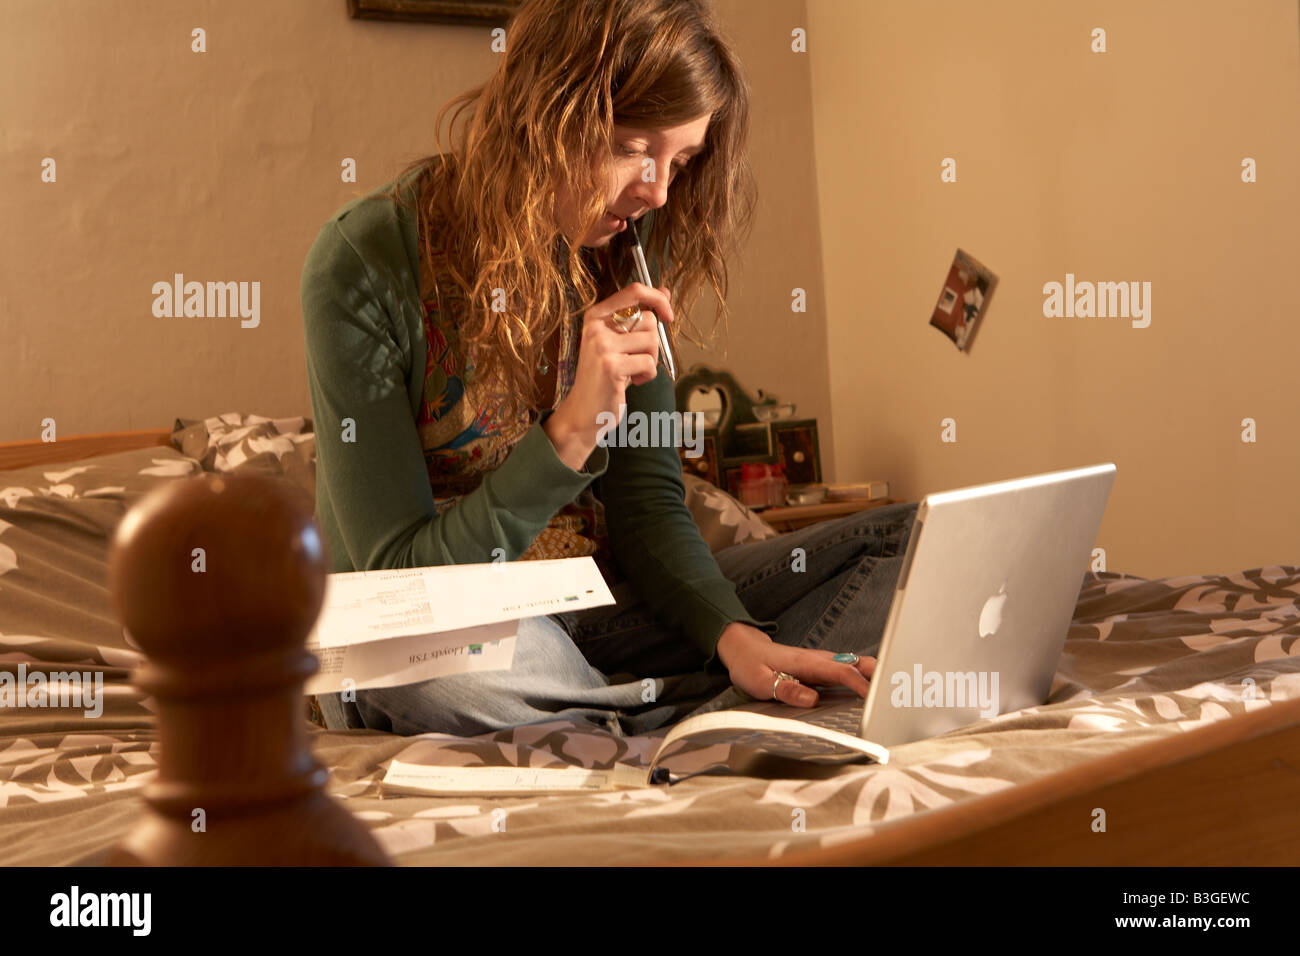 STUDENT SITTING ON A BED WITH COMPUTER TRYING TO BALANCE HER FINANCES - Stock Image